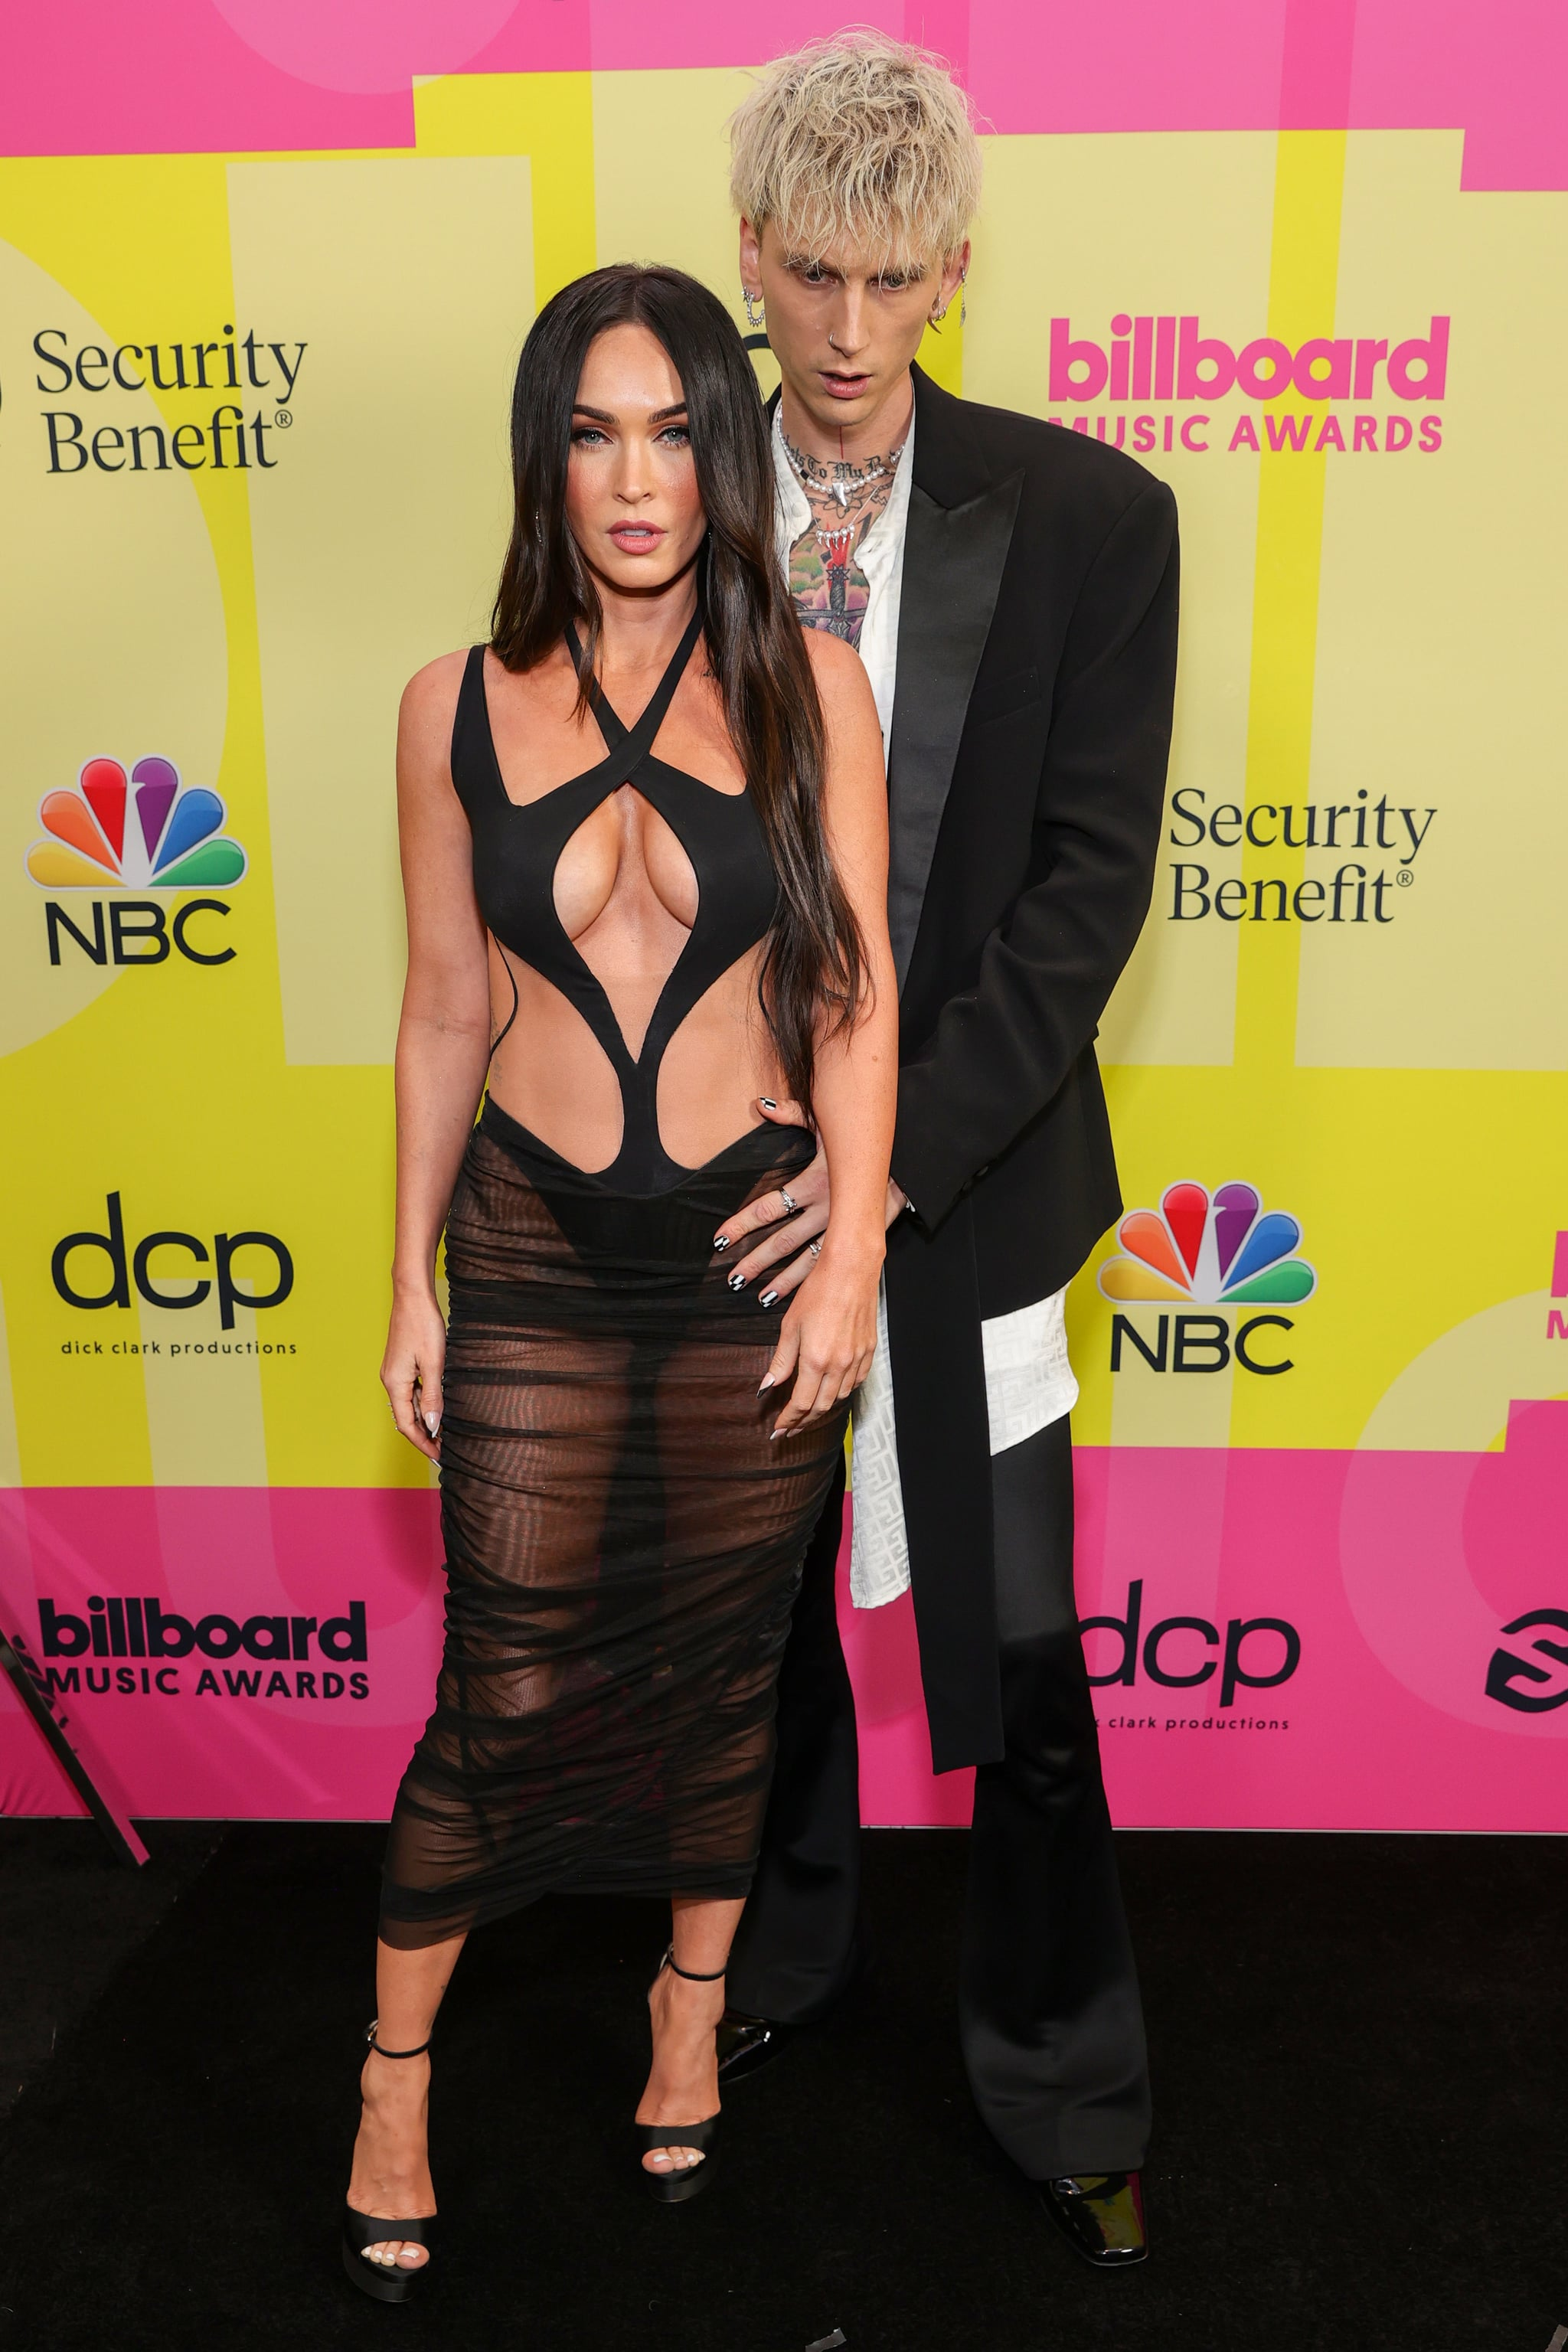 LOS ANGELES, CALIFORNIA - MAY 23: Megan Fox and Machine Gun Kelly poses backstage for the 2021 Billboard Music Awards, broadcast on May 23, 2021 at Microsoft Theater in Los Angeles, California. (Photo by Rich Fury/Getty Images for dcp)